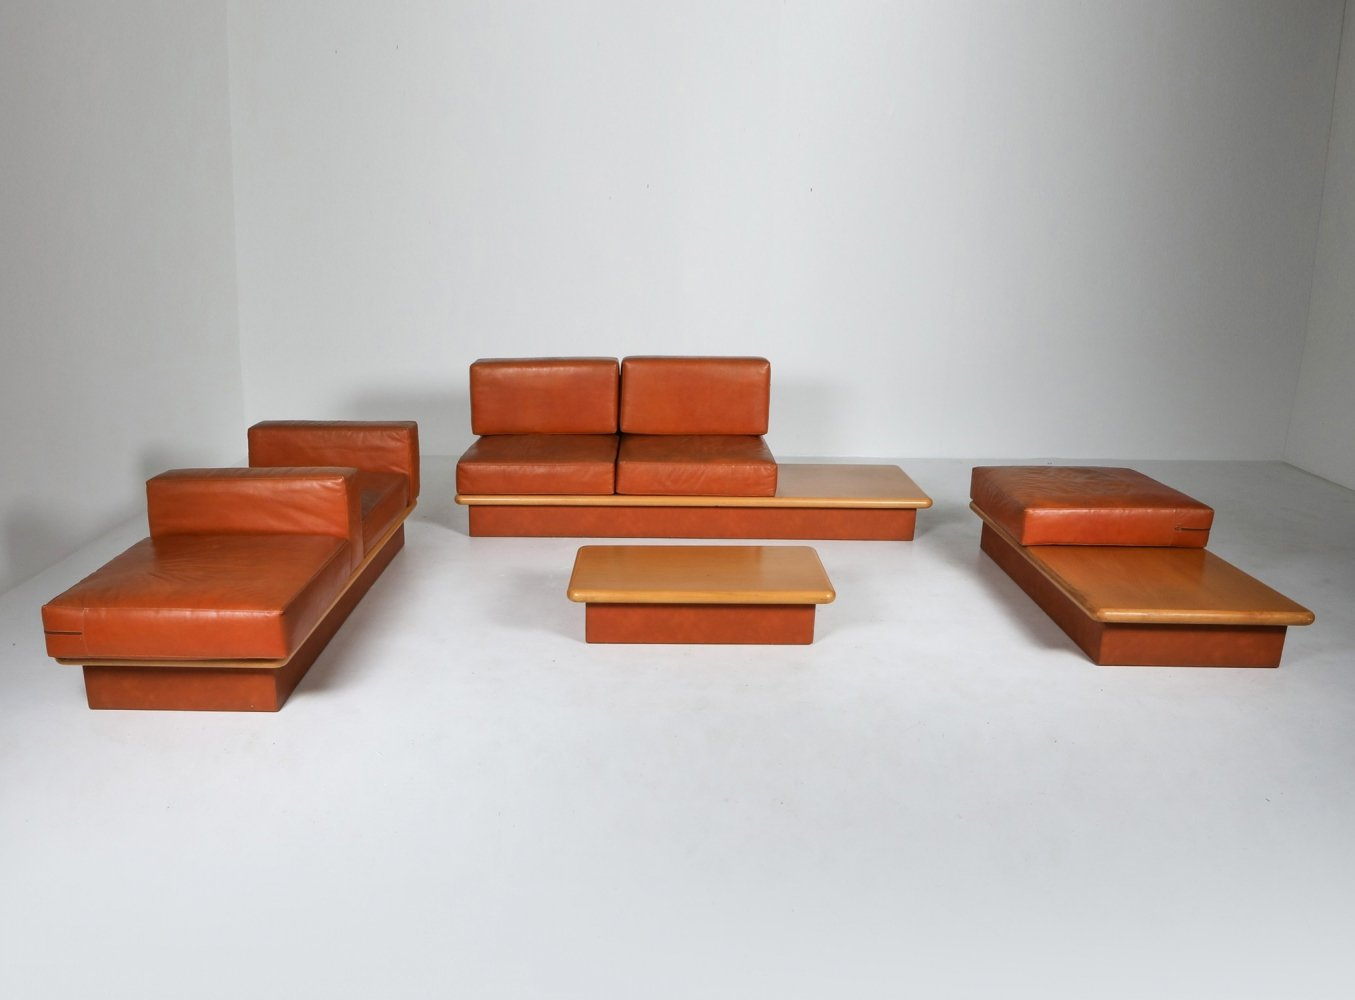 Beech & leather living room set by Mario Marenco, Italy 1970